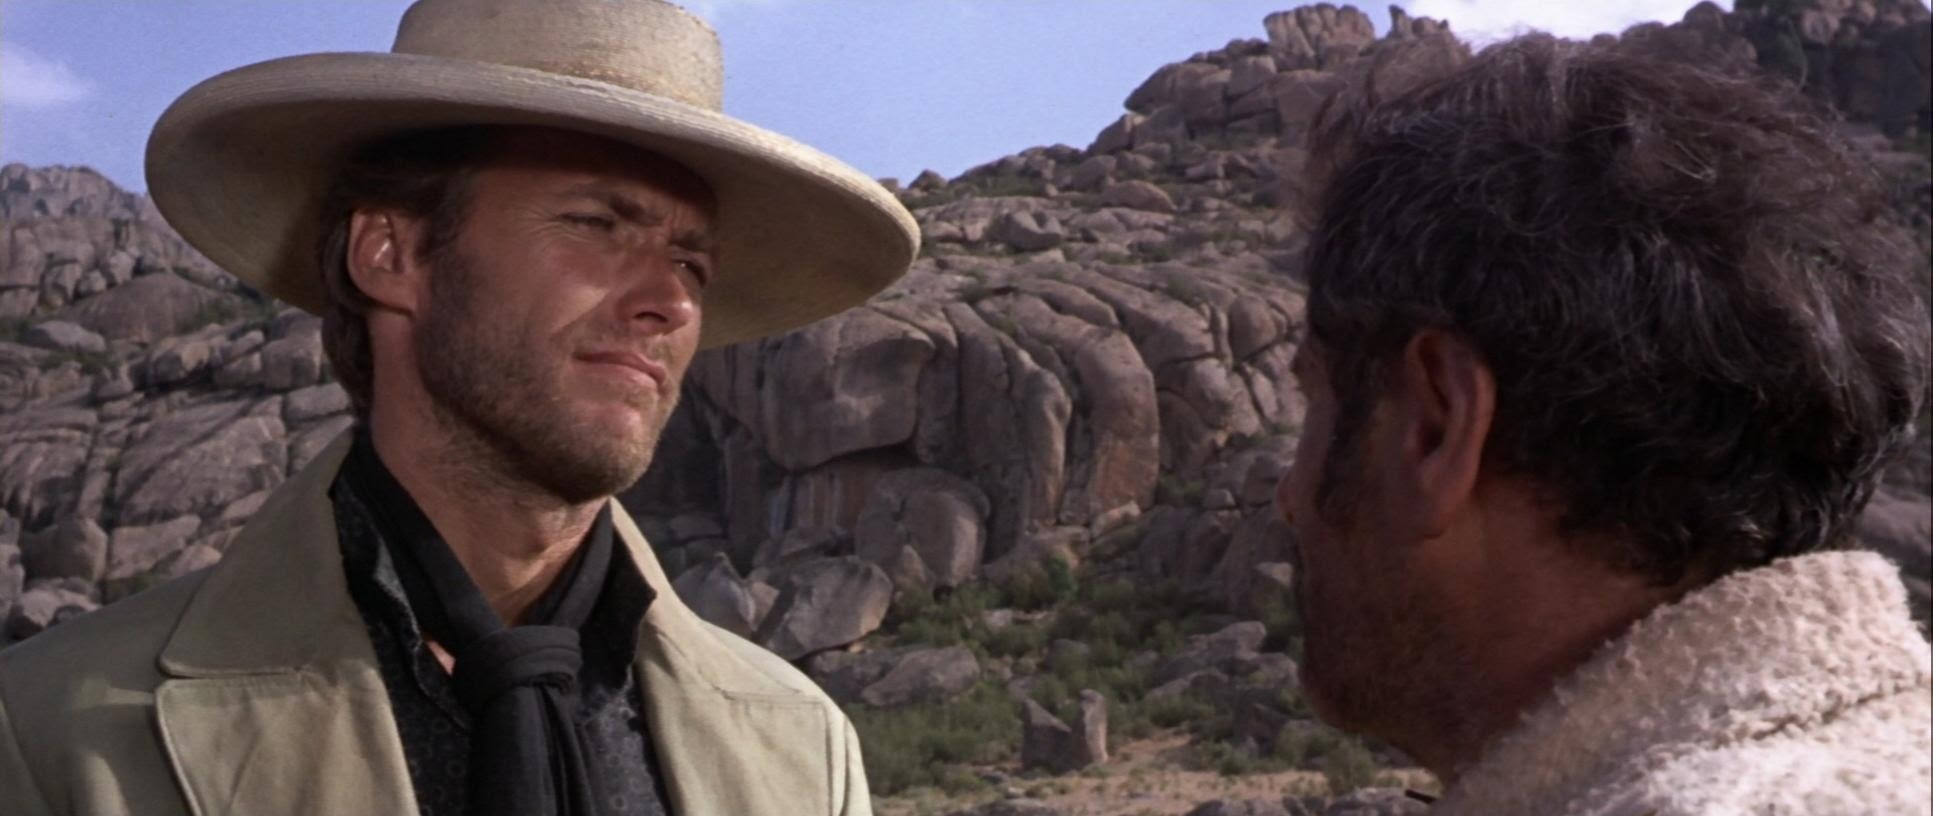 Clint Eastwood The Good The Bad And The Ugly 1933x816 Wallpaper